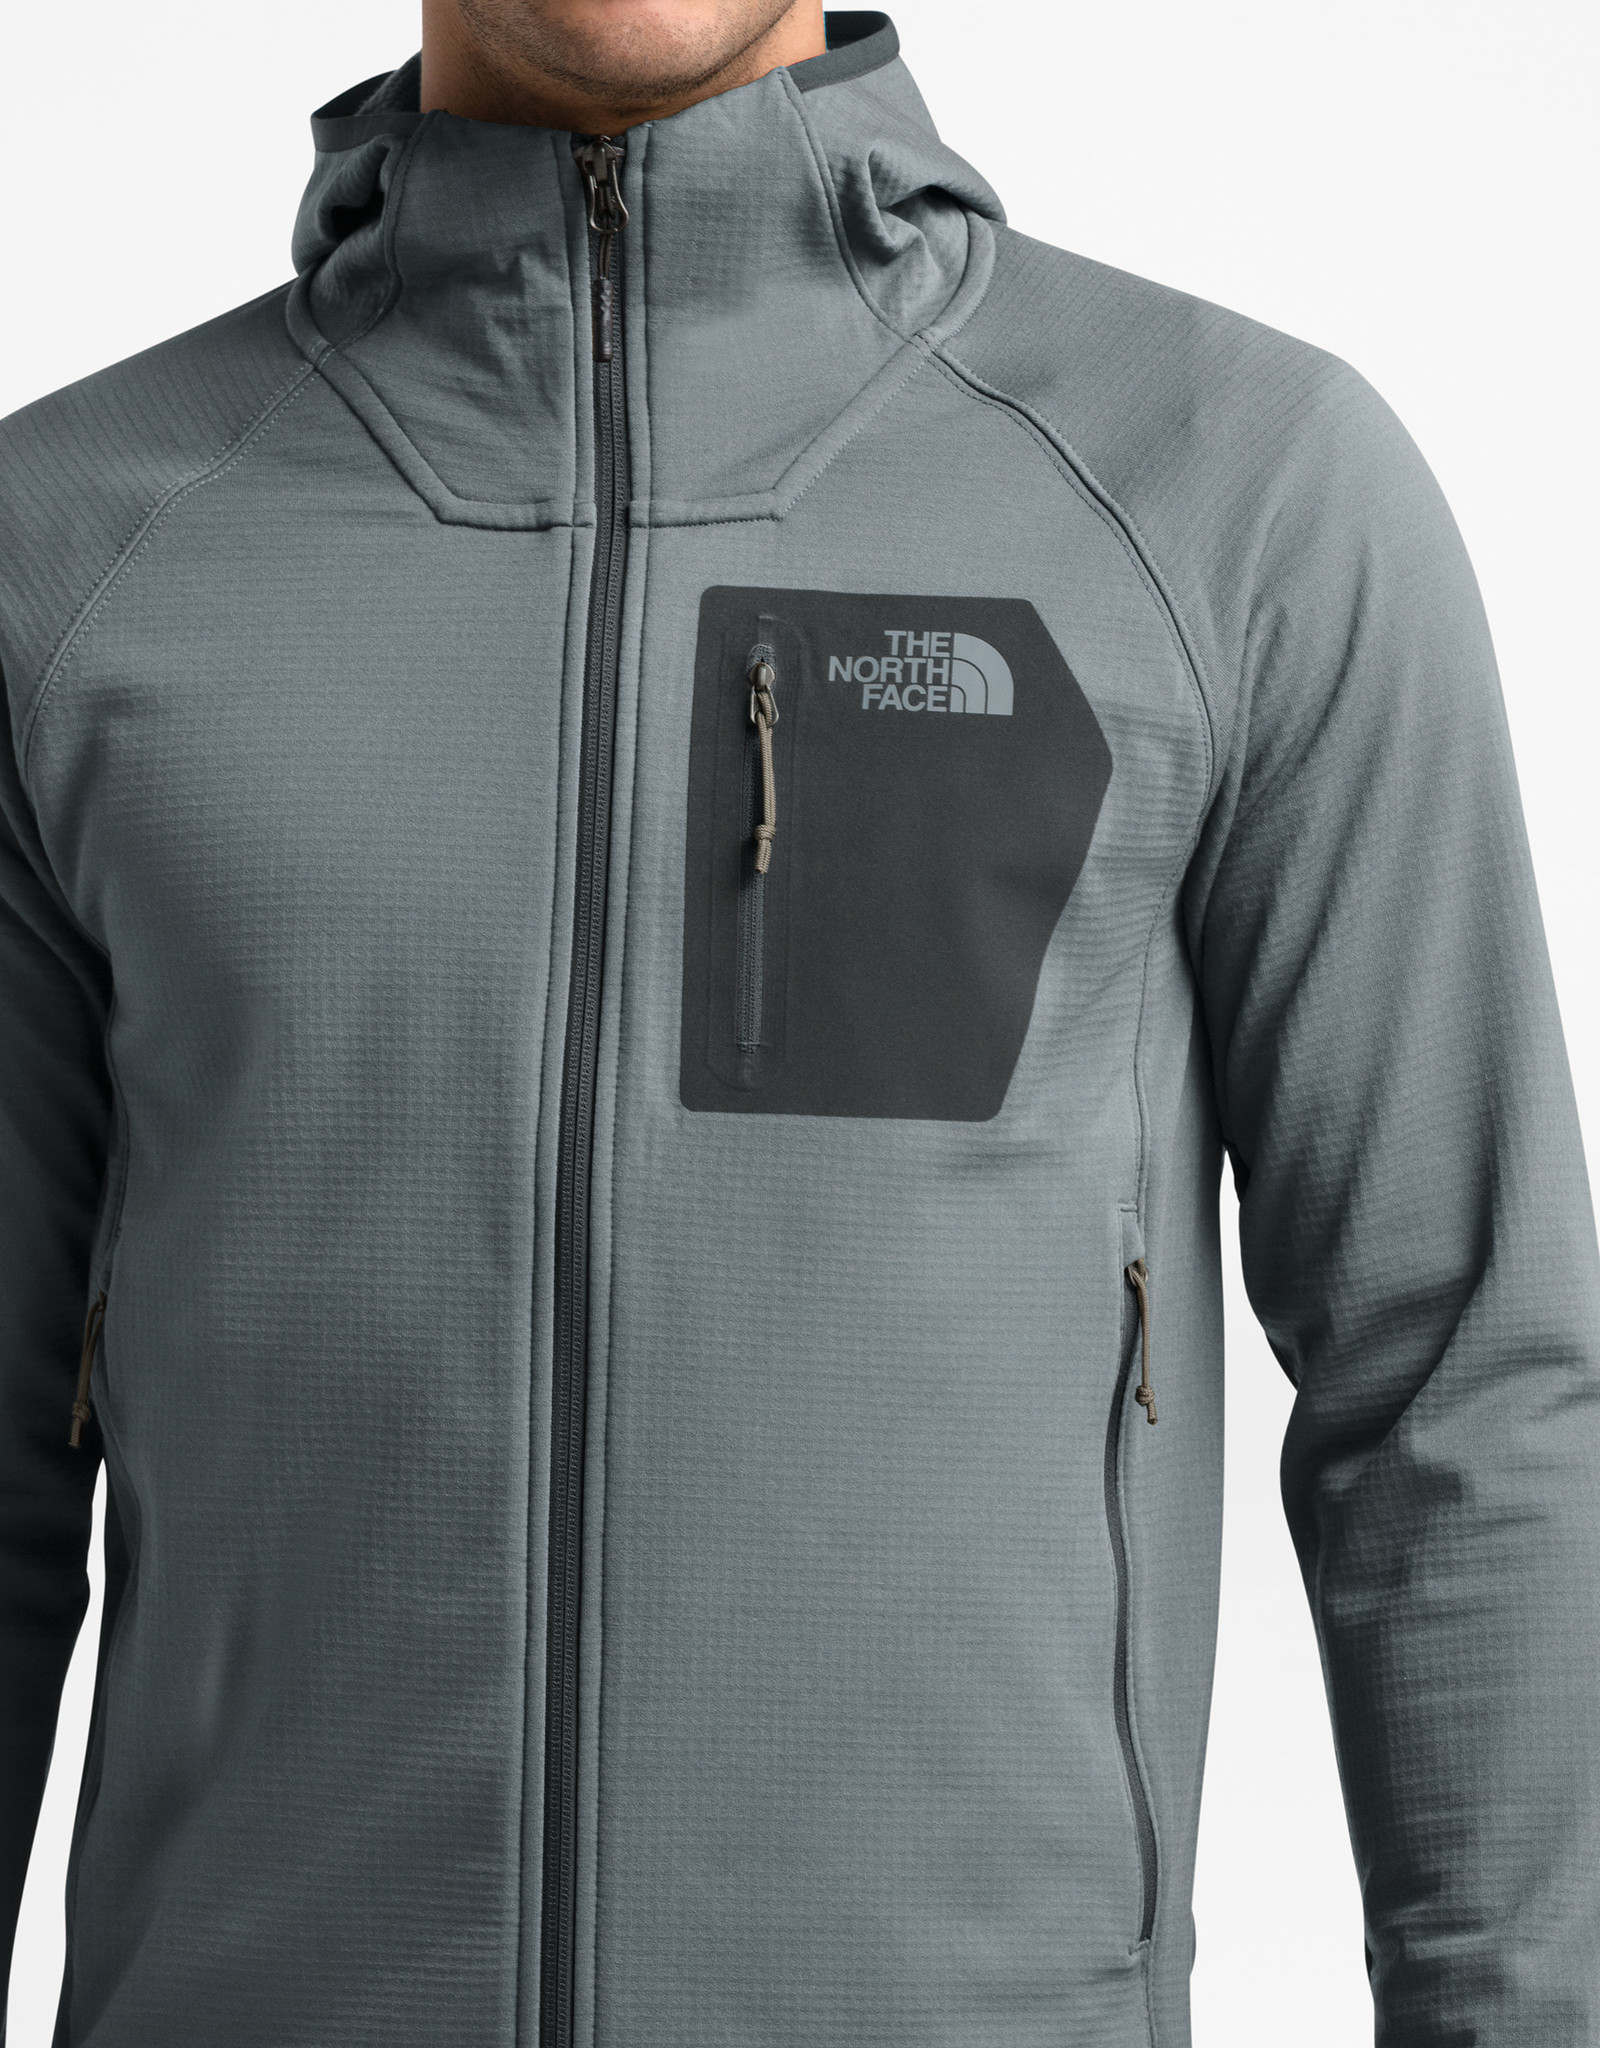 The North Face The North Face Men's Borod Hoodie - F2019